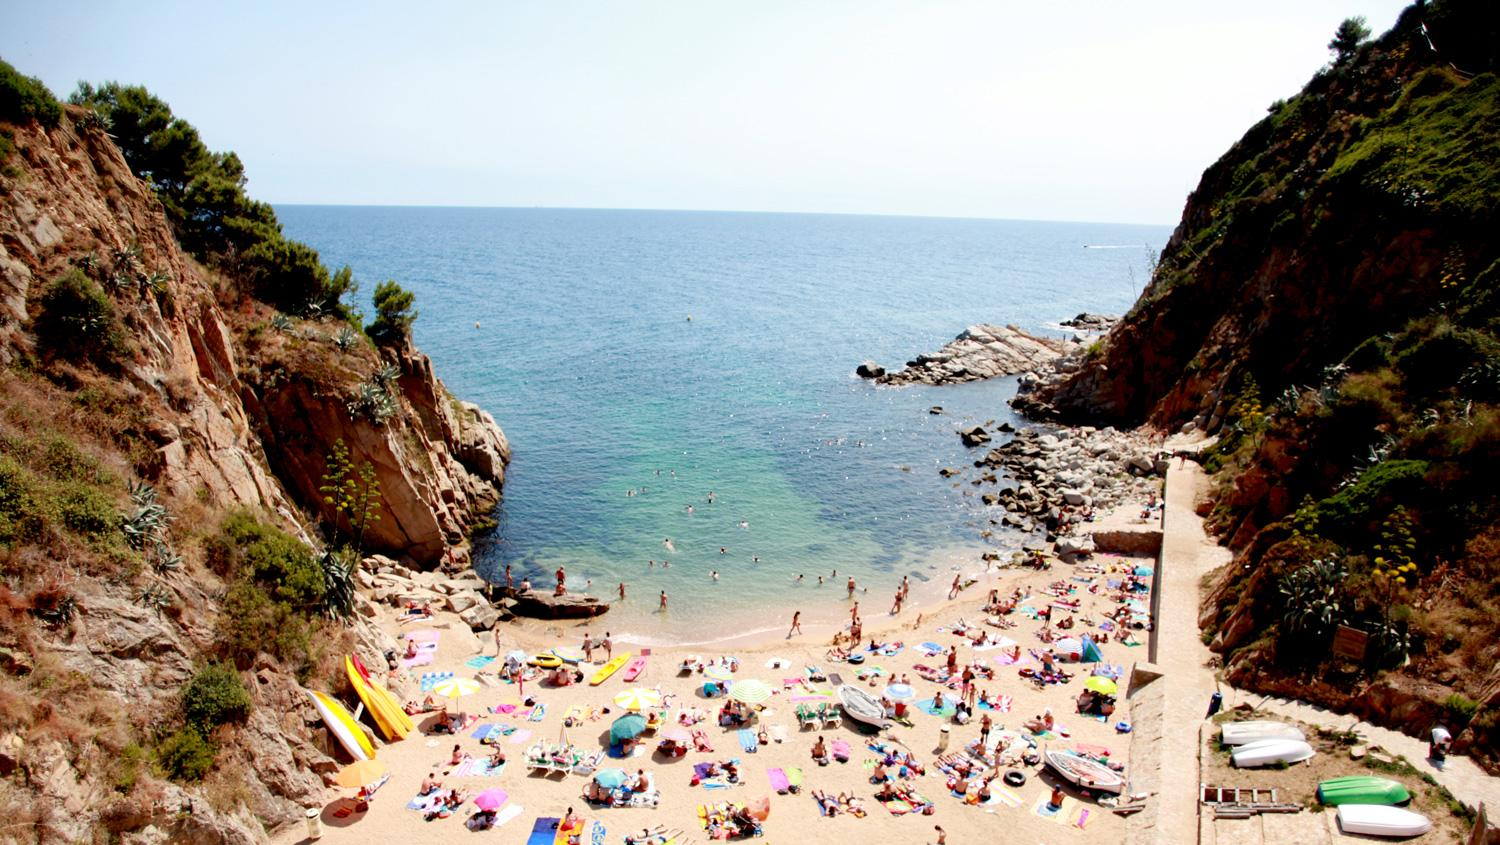 Spanish beaches (such as Tossa del Mar) will be full again this summer.